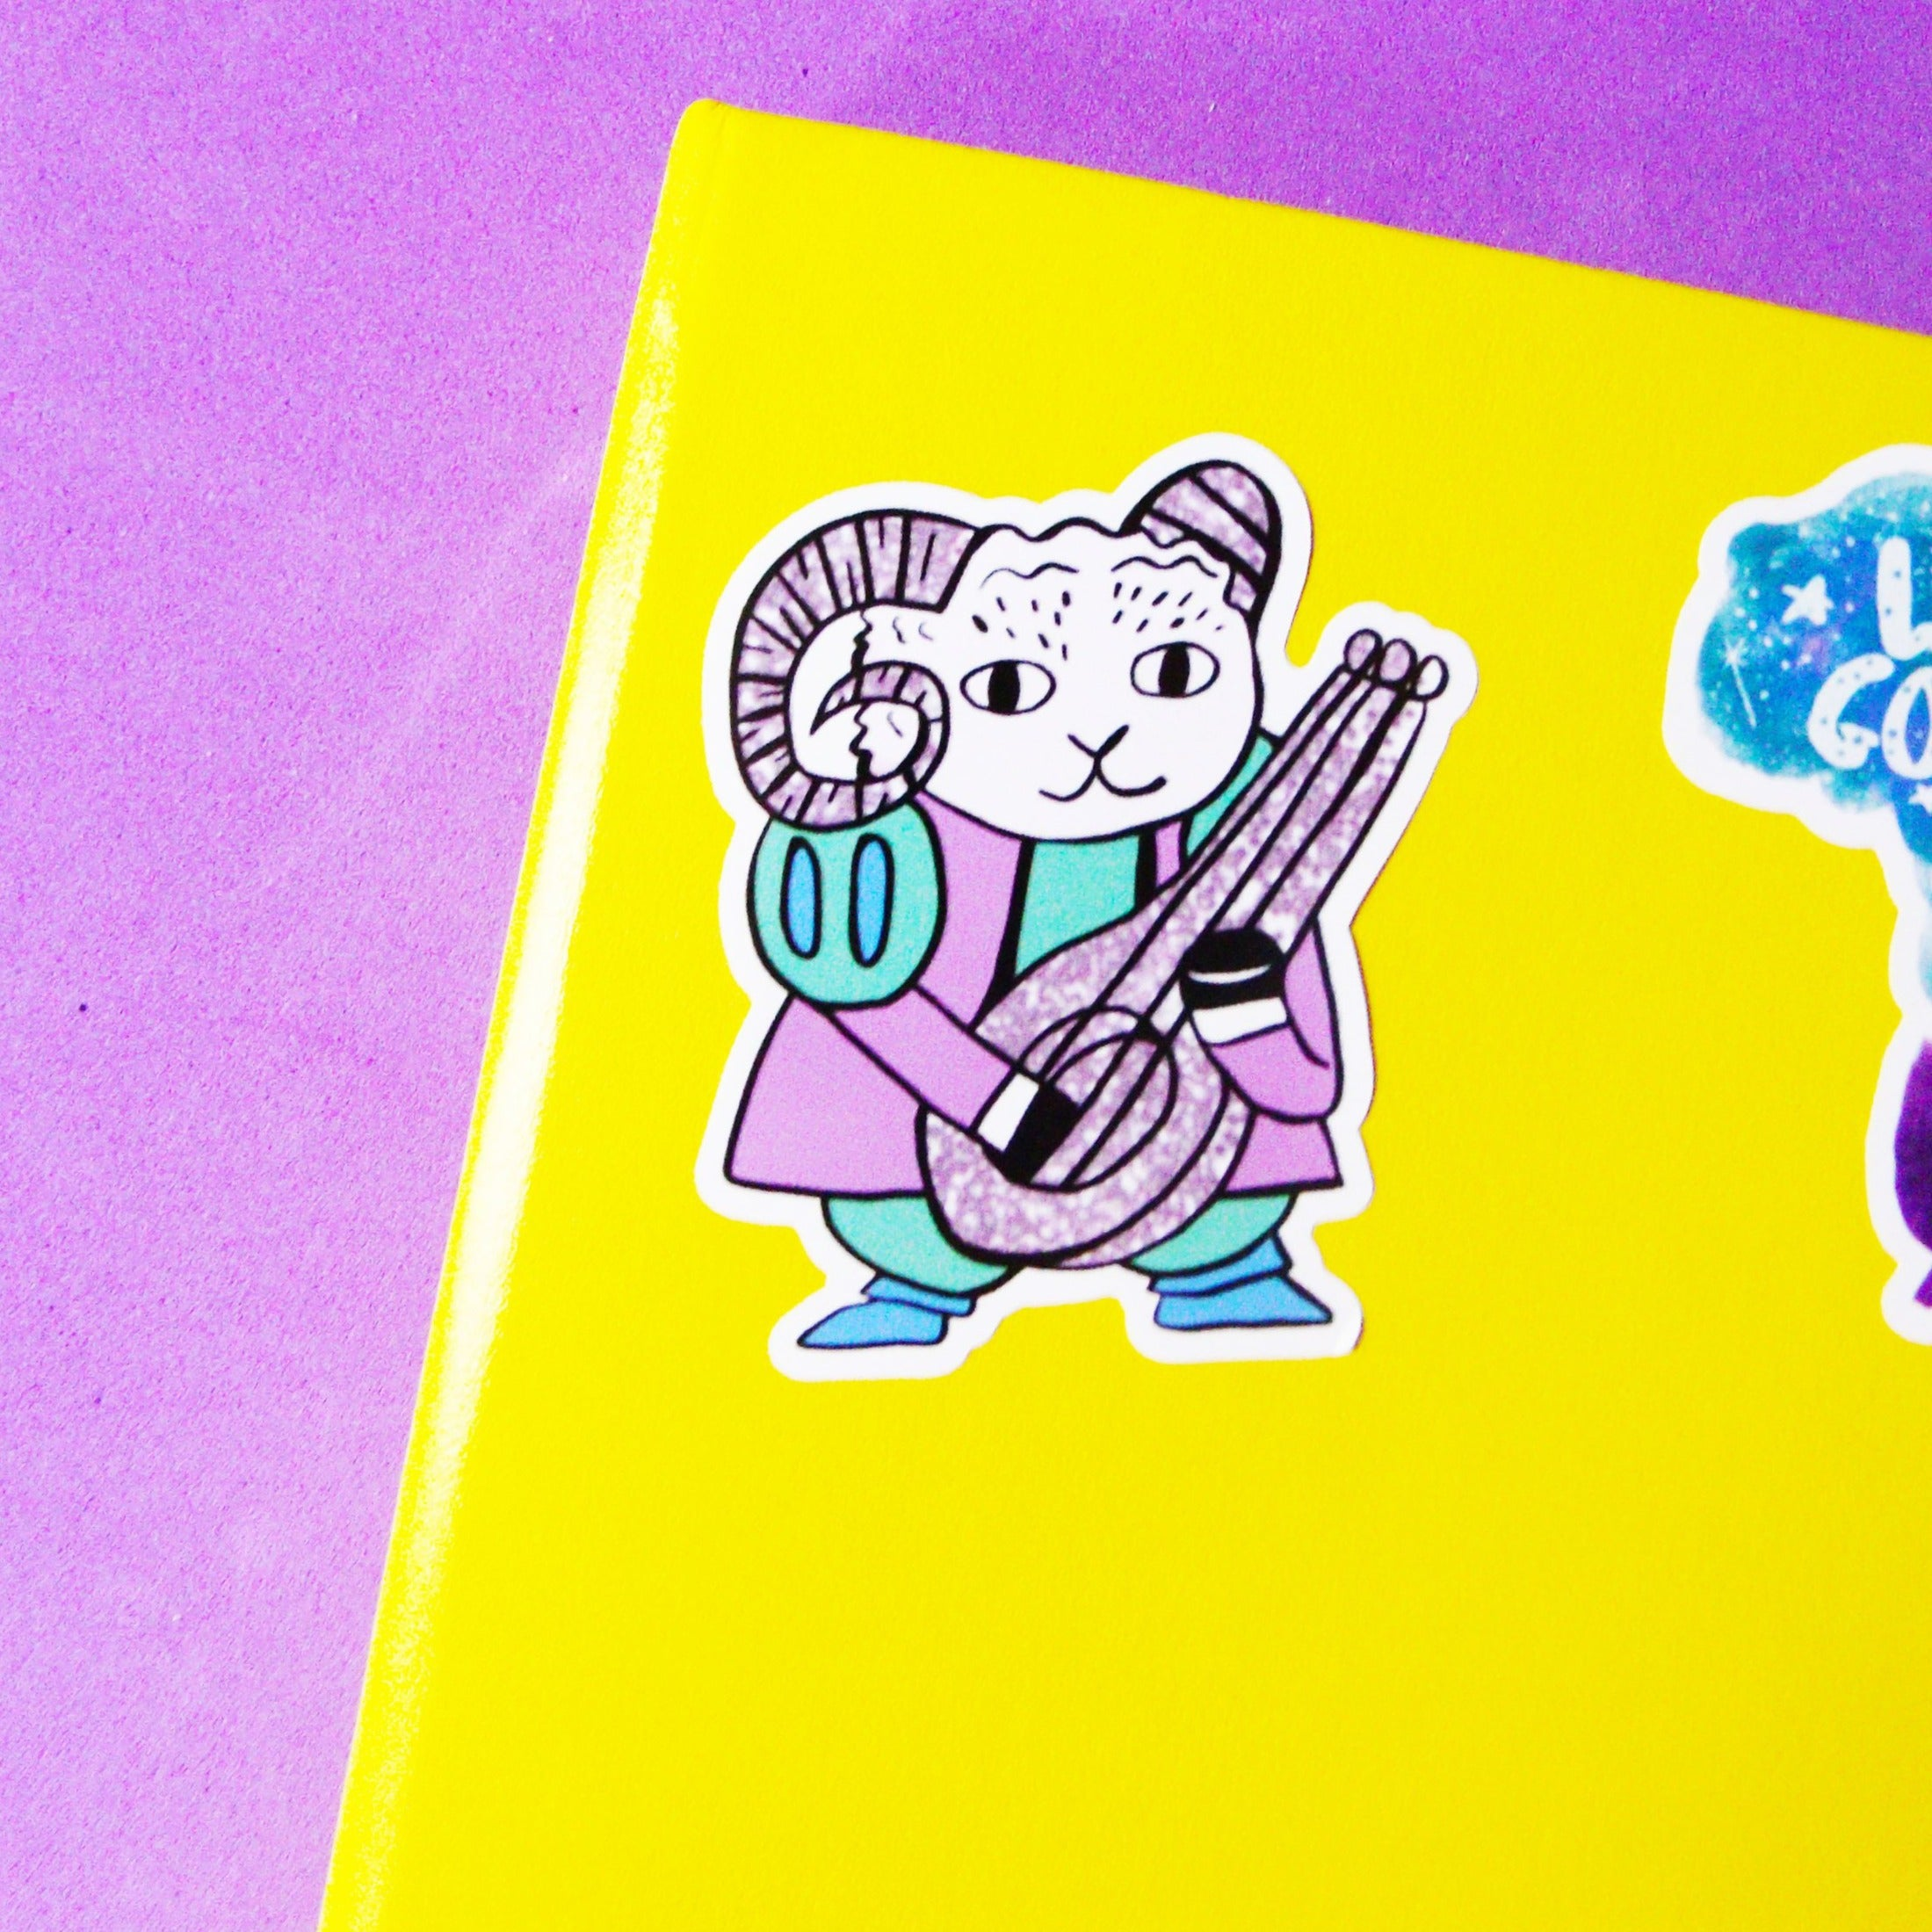 small vinyl sticker featuring a cute illustration of a goat dressed as a bard. he's holding a lute and wearing a green and purple outfit.